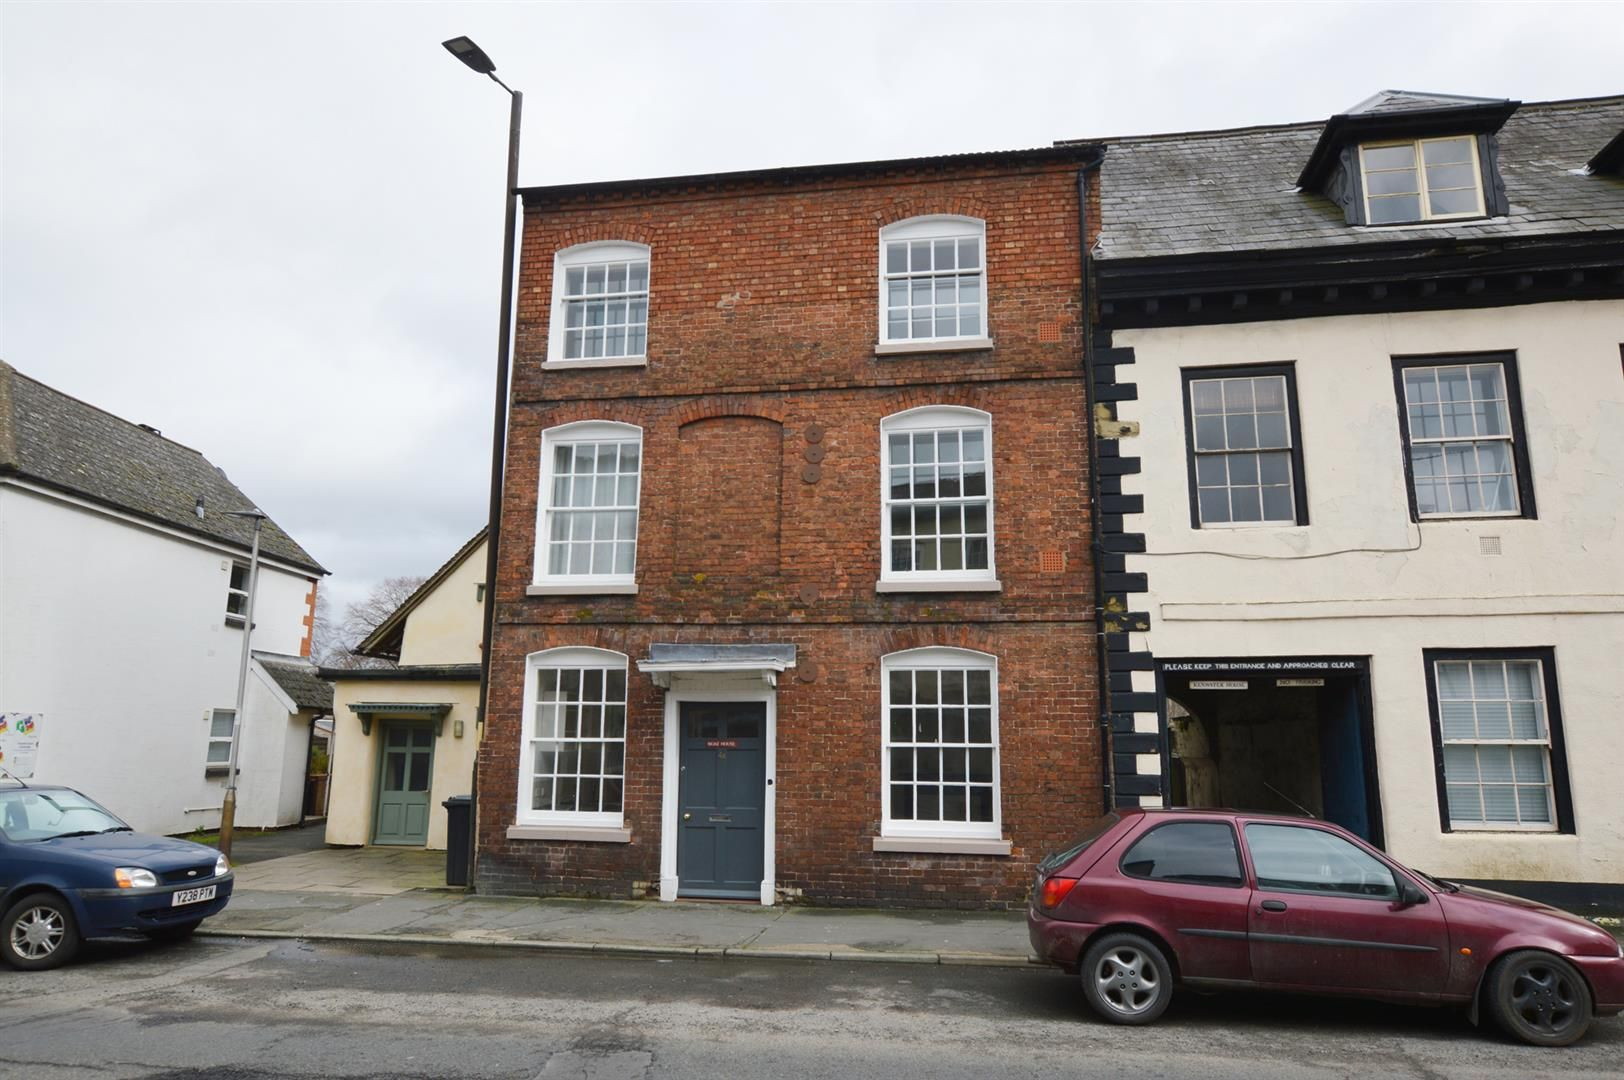 3 bed town-house for sale in Leominster, HR6